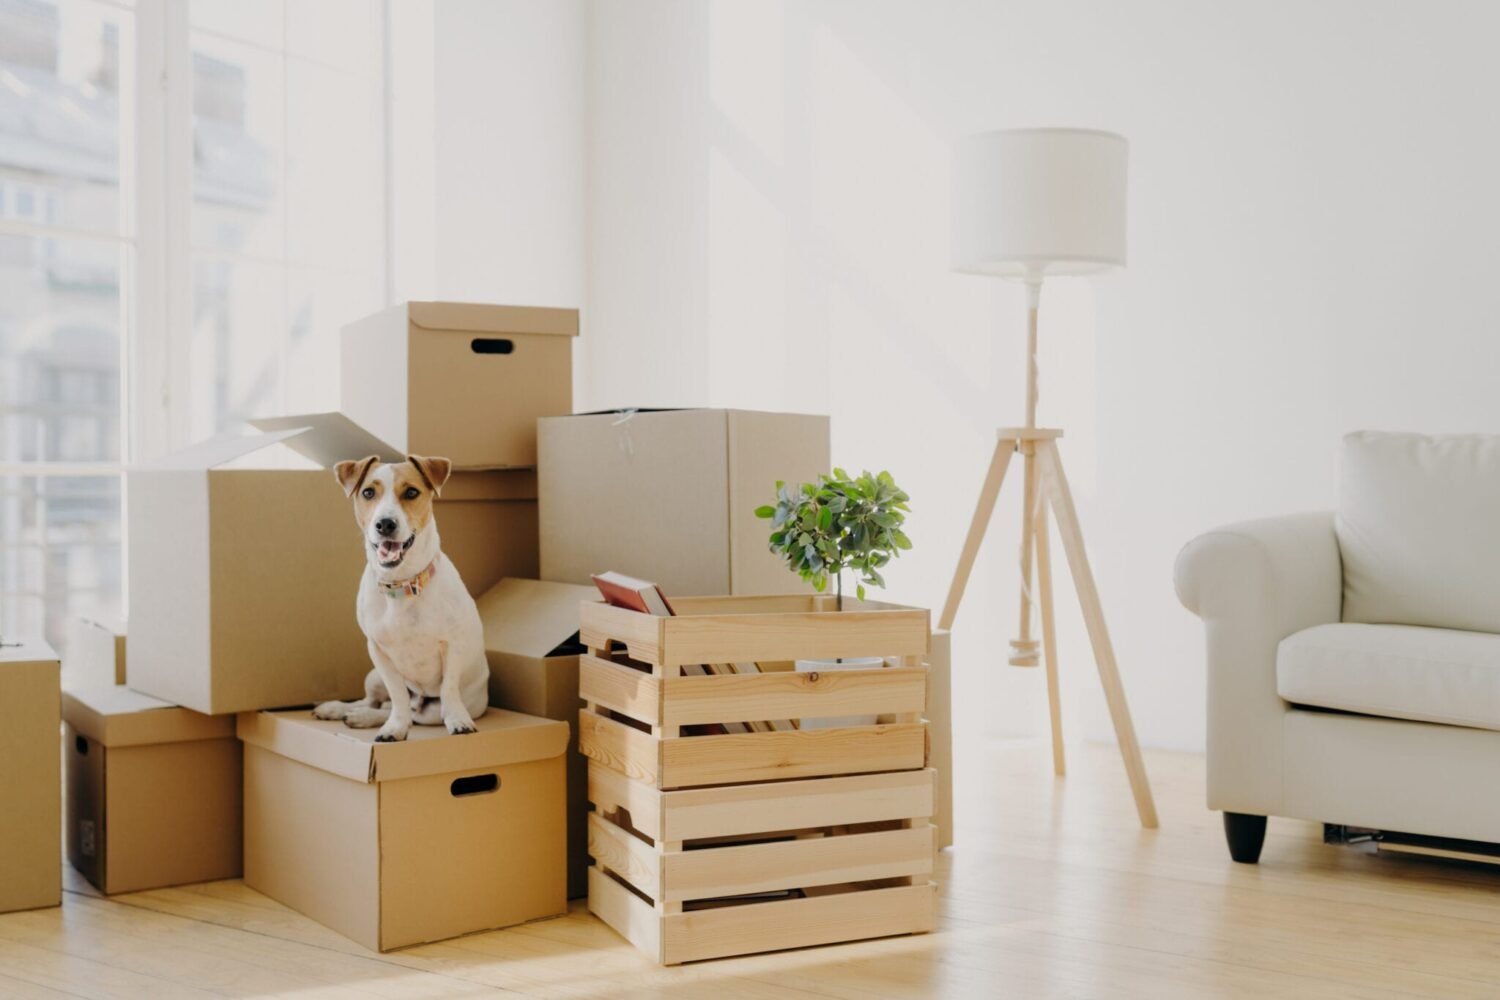 7 Things You Should Know About Moving and Storage Services